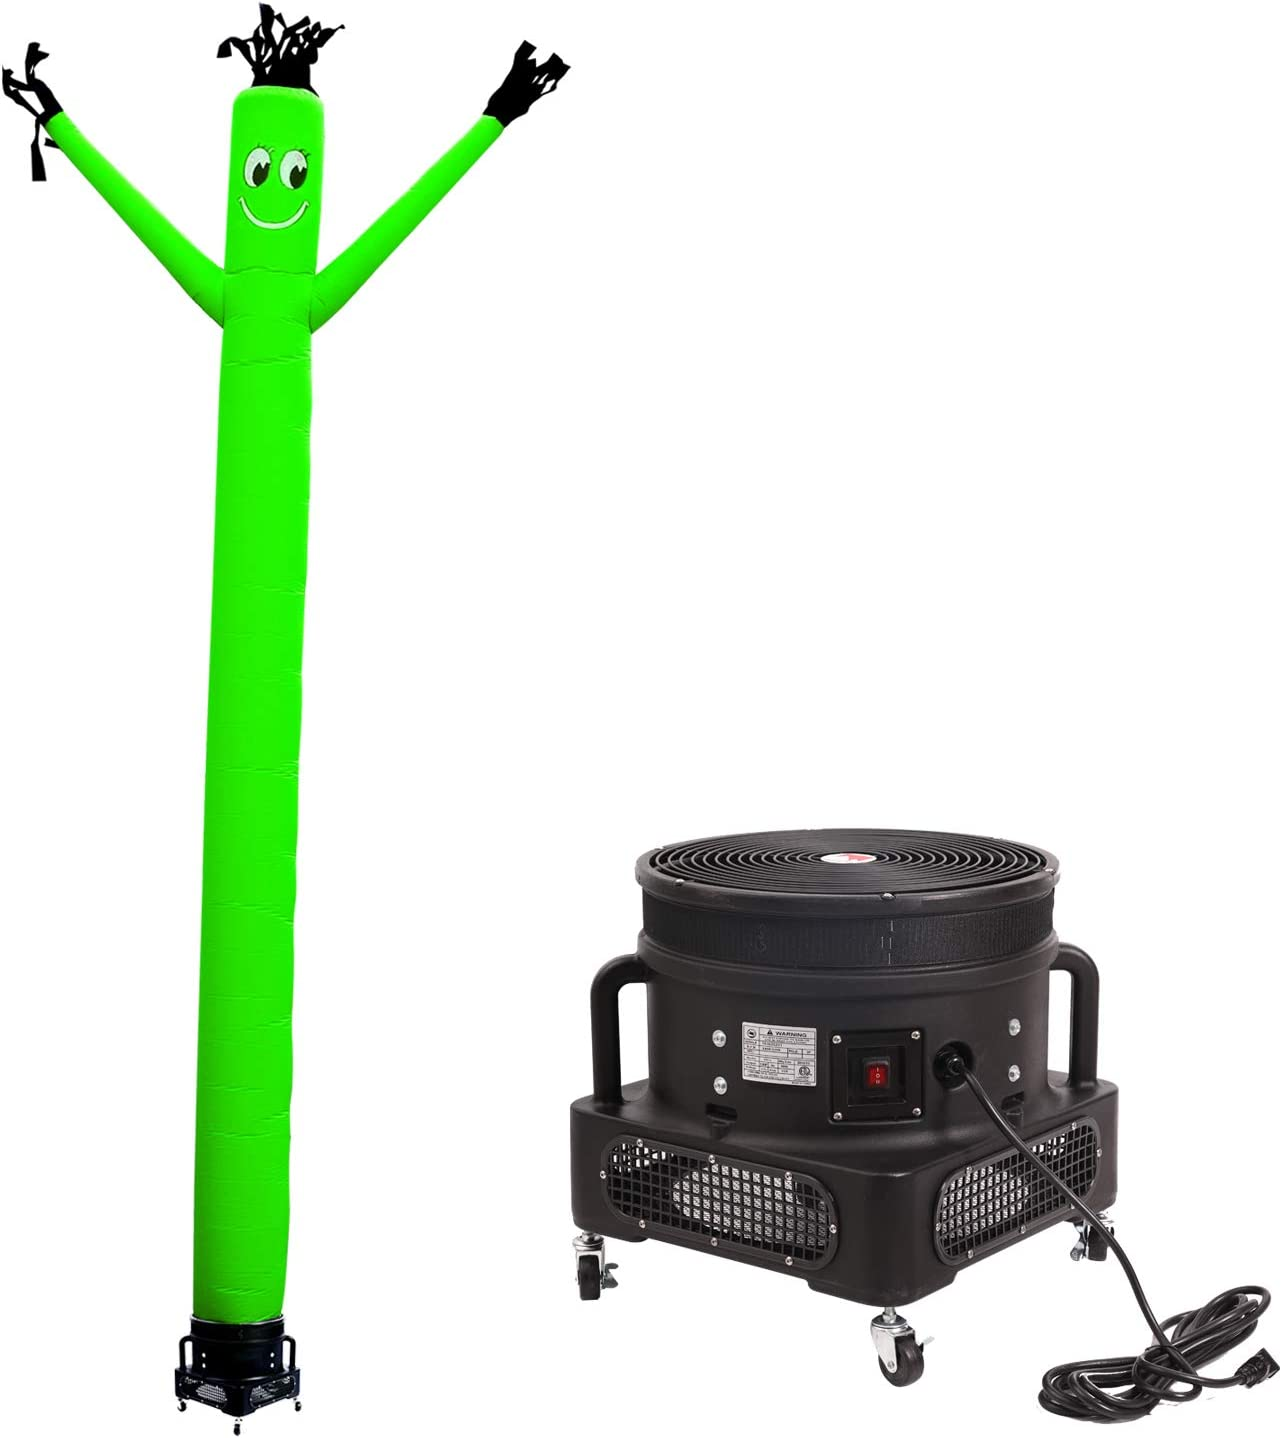 MOUNTO 20ft Air Inflatable Tube Guy Puppet Dancing Man with 1HP Blower Complete Set, 20-Feet 18Inch (Green)